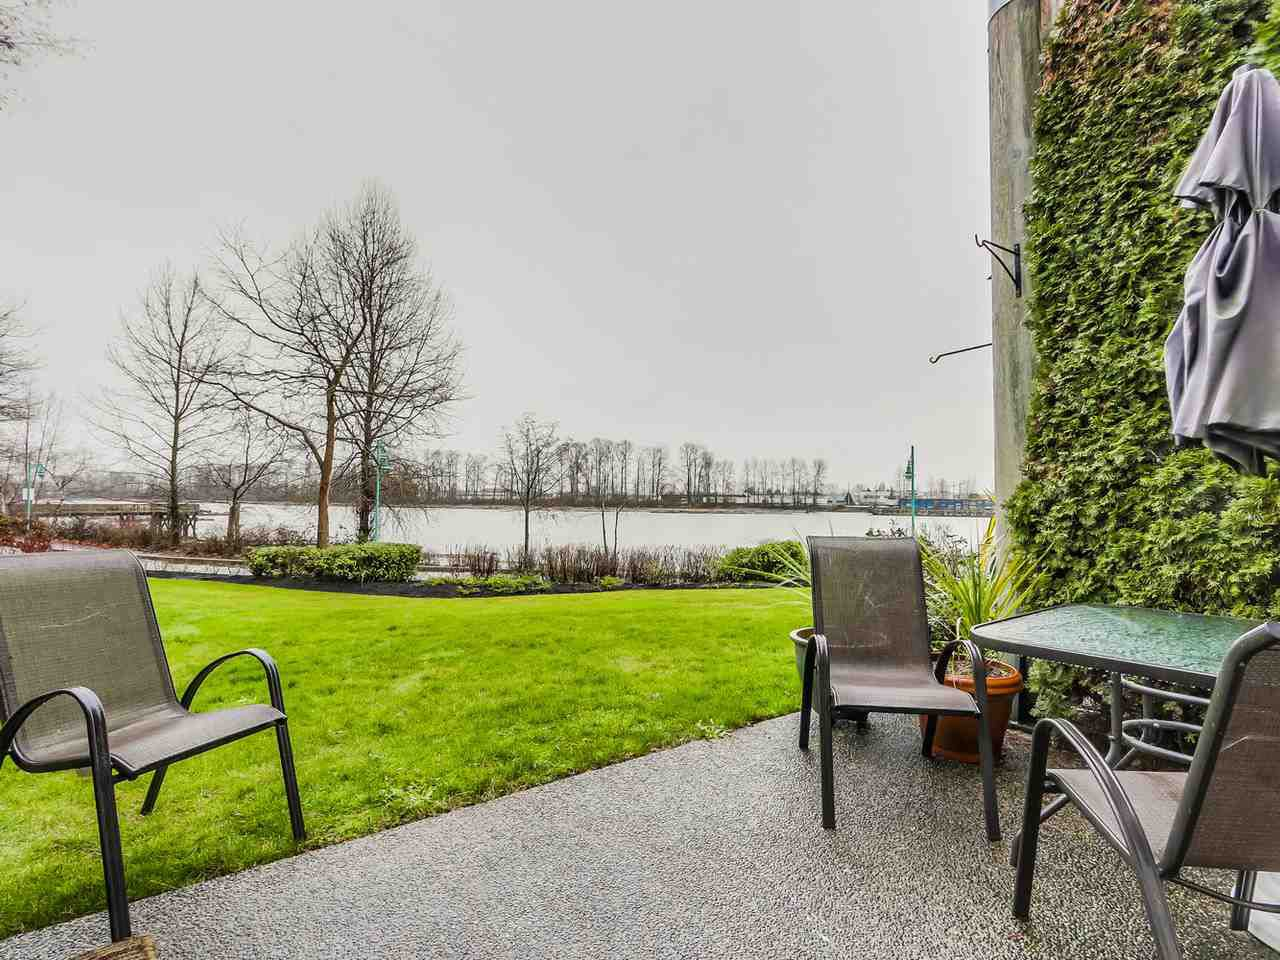 Main Photo: 3 2138 E KENT AVENUE SOUTH in Vancouver: Fraserview VE Townhouse for sale (Vancouver East)  : MLS®# R2031145